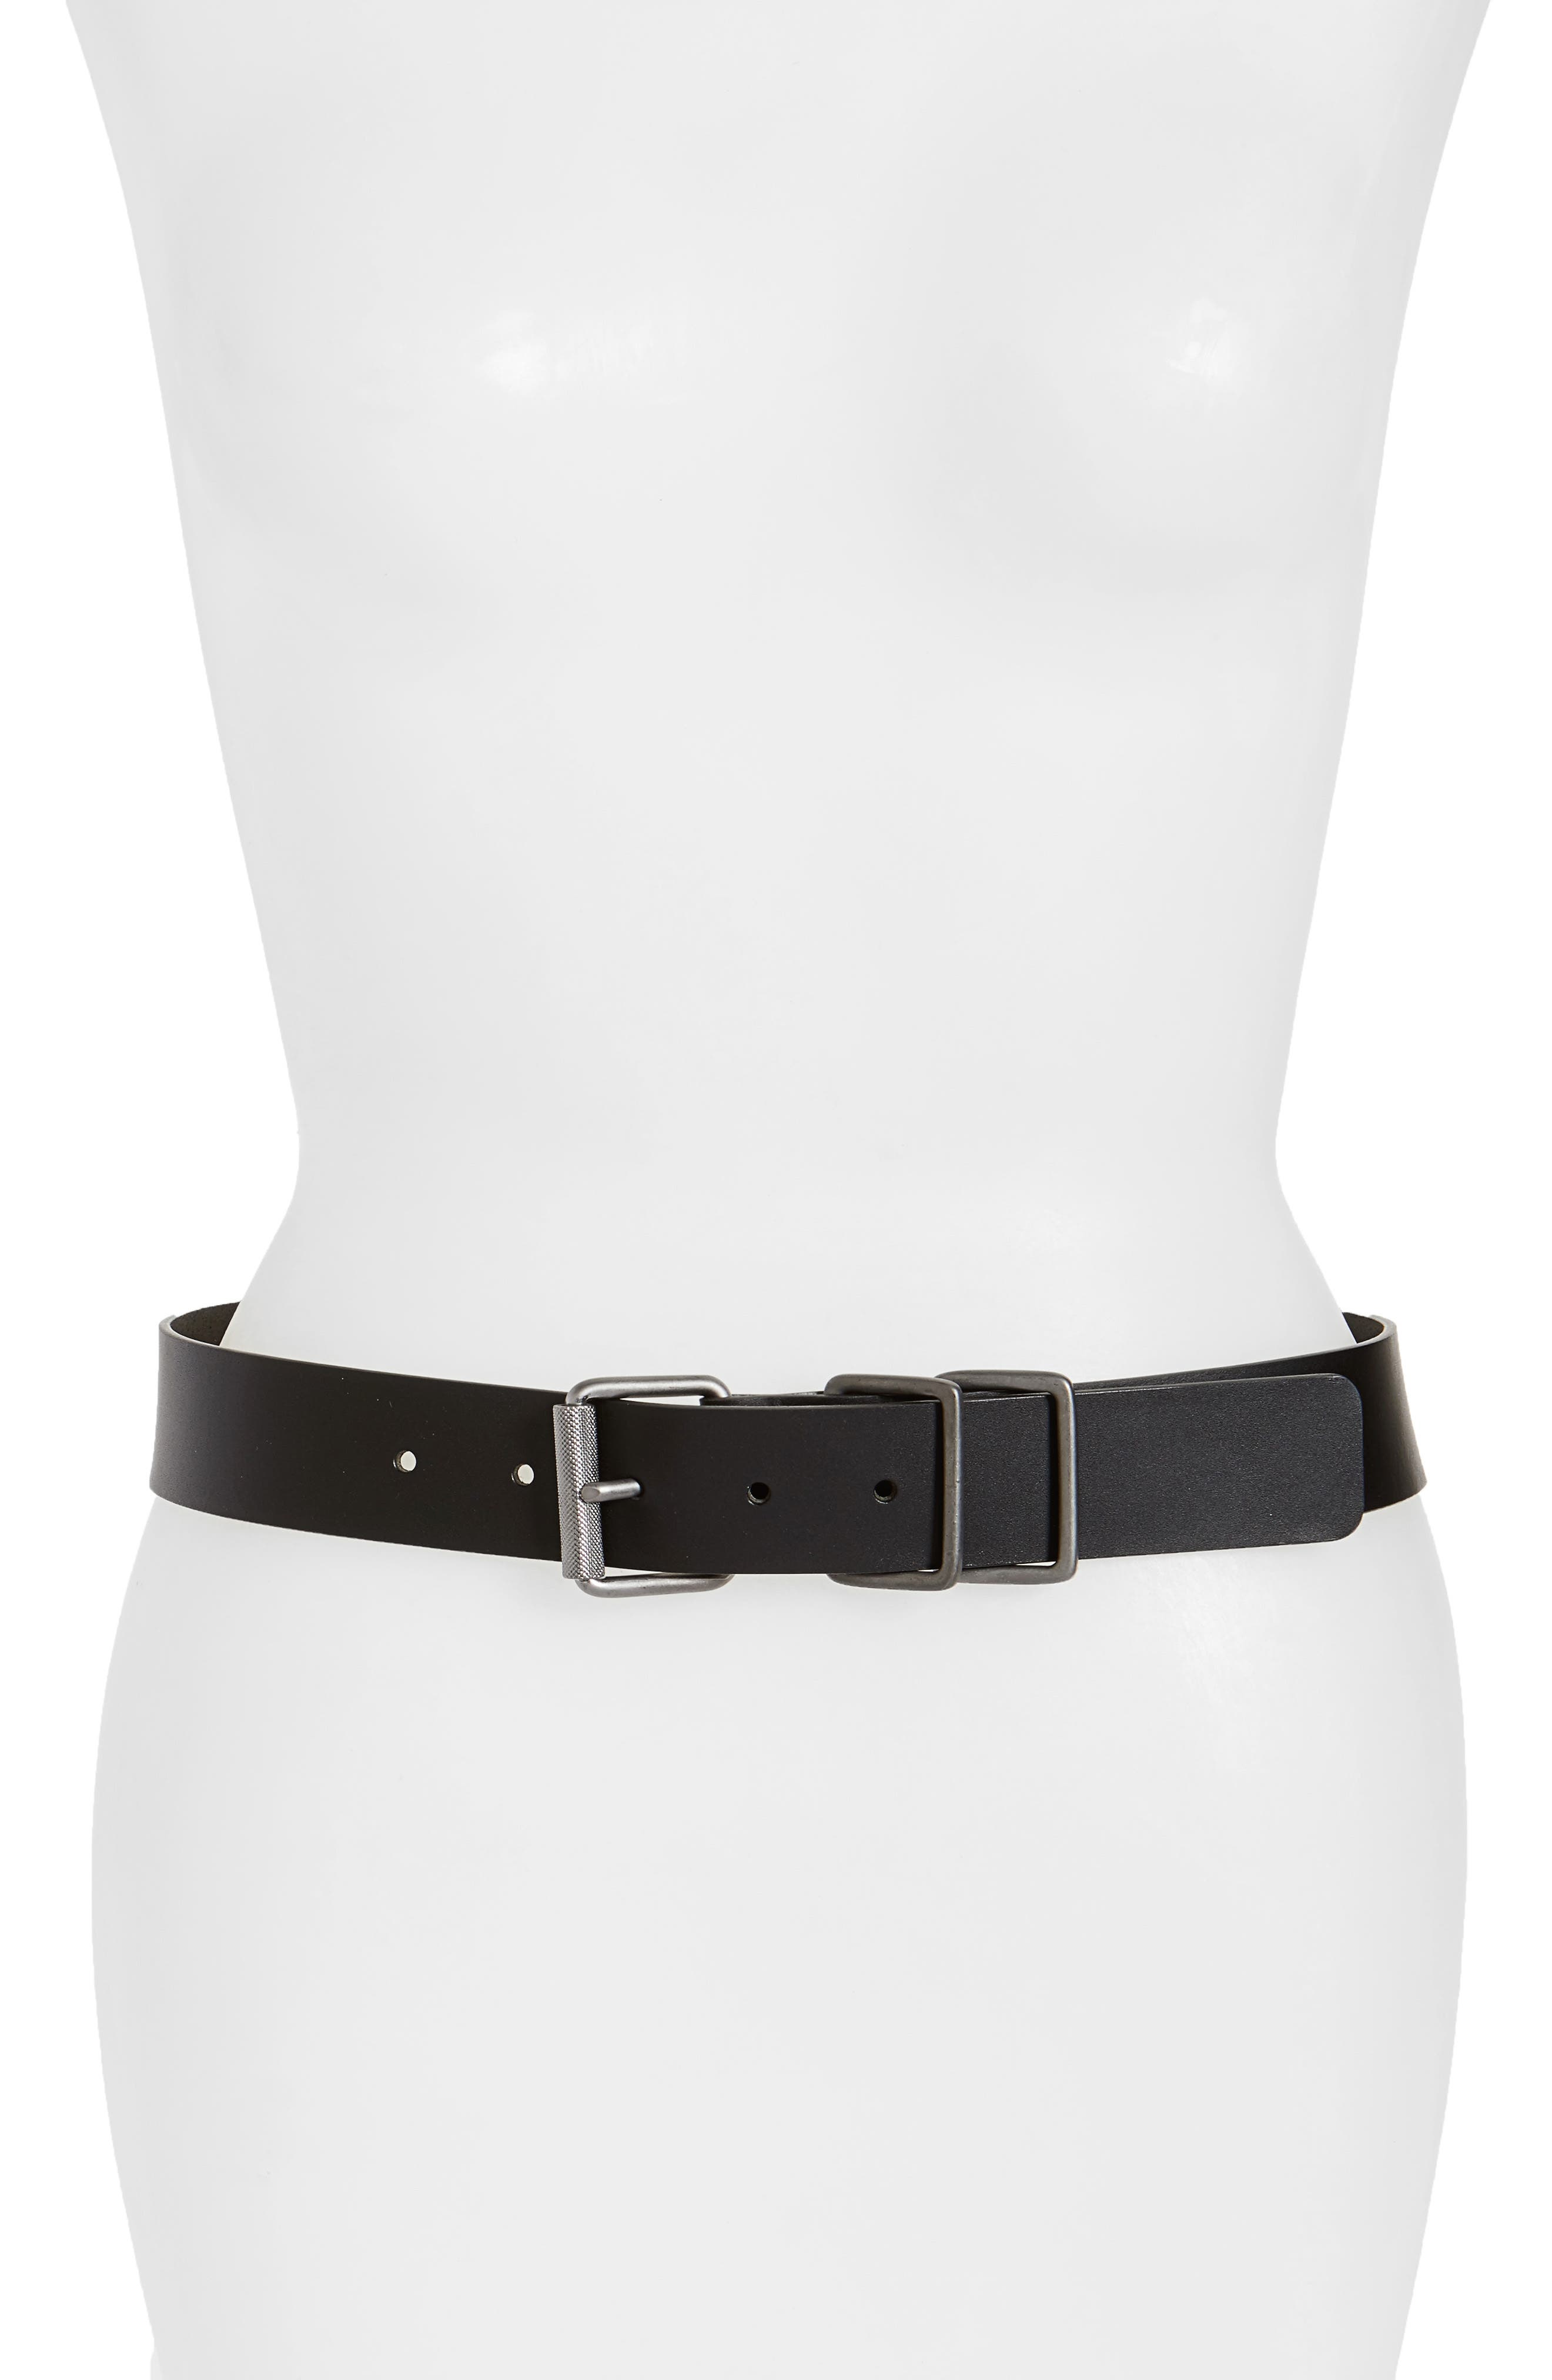 Engineer Leather Belt,                             Main thumbnail 1, color,                             001